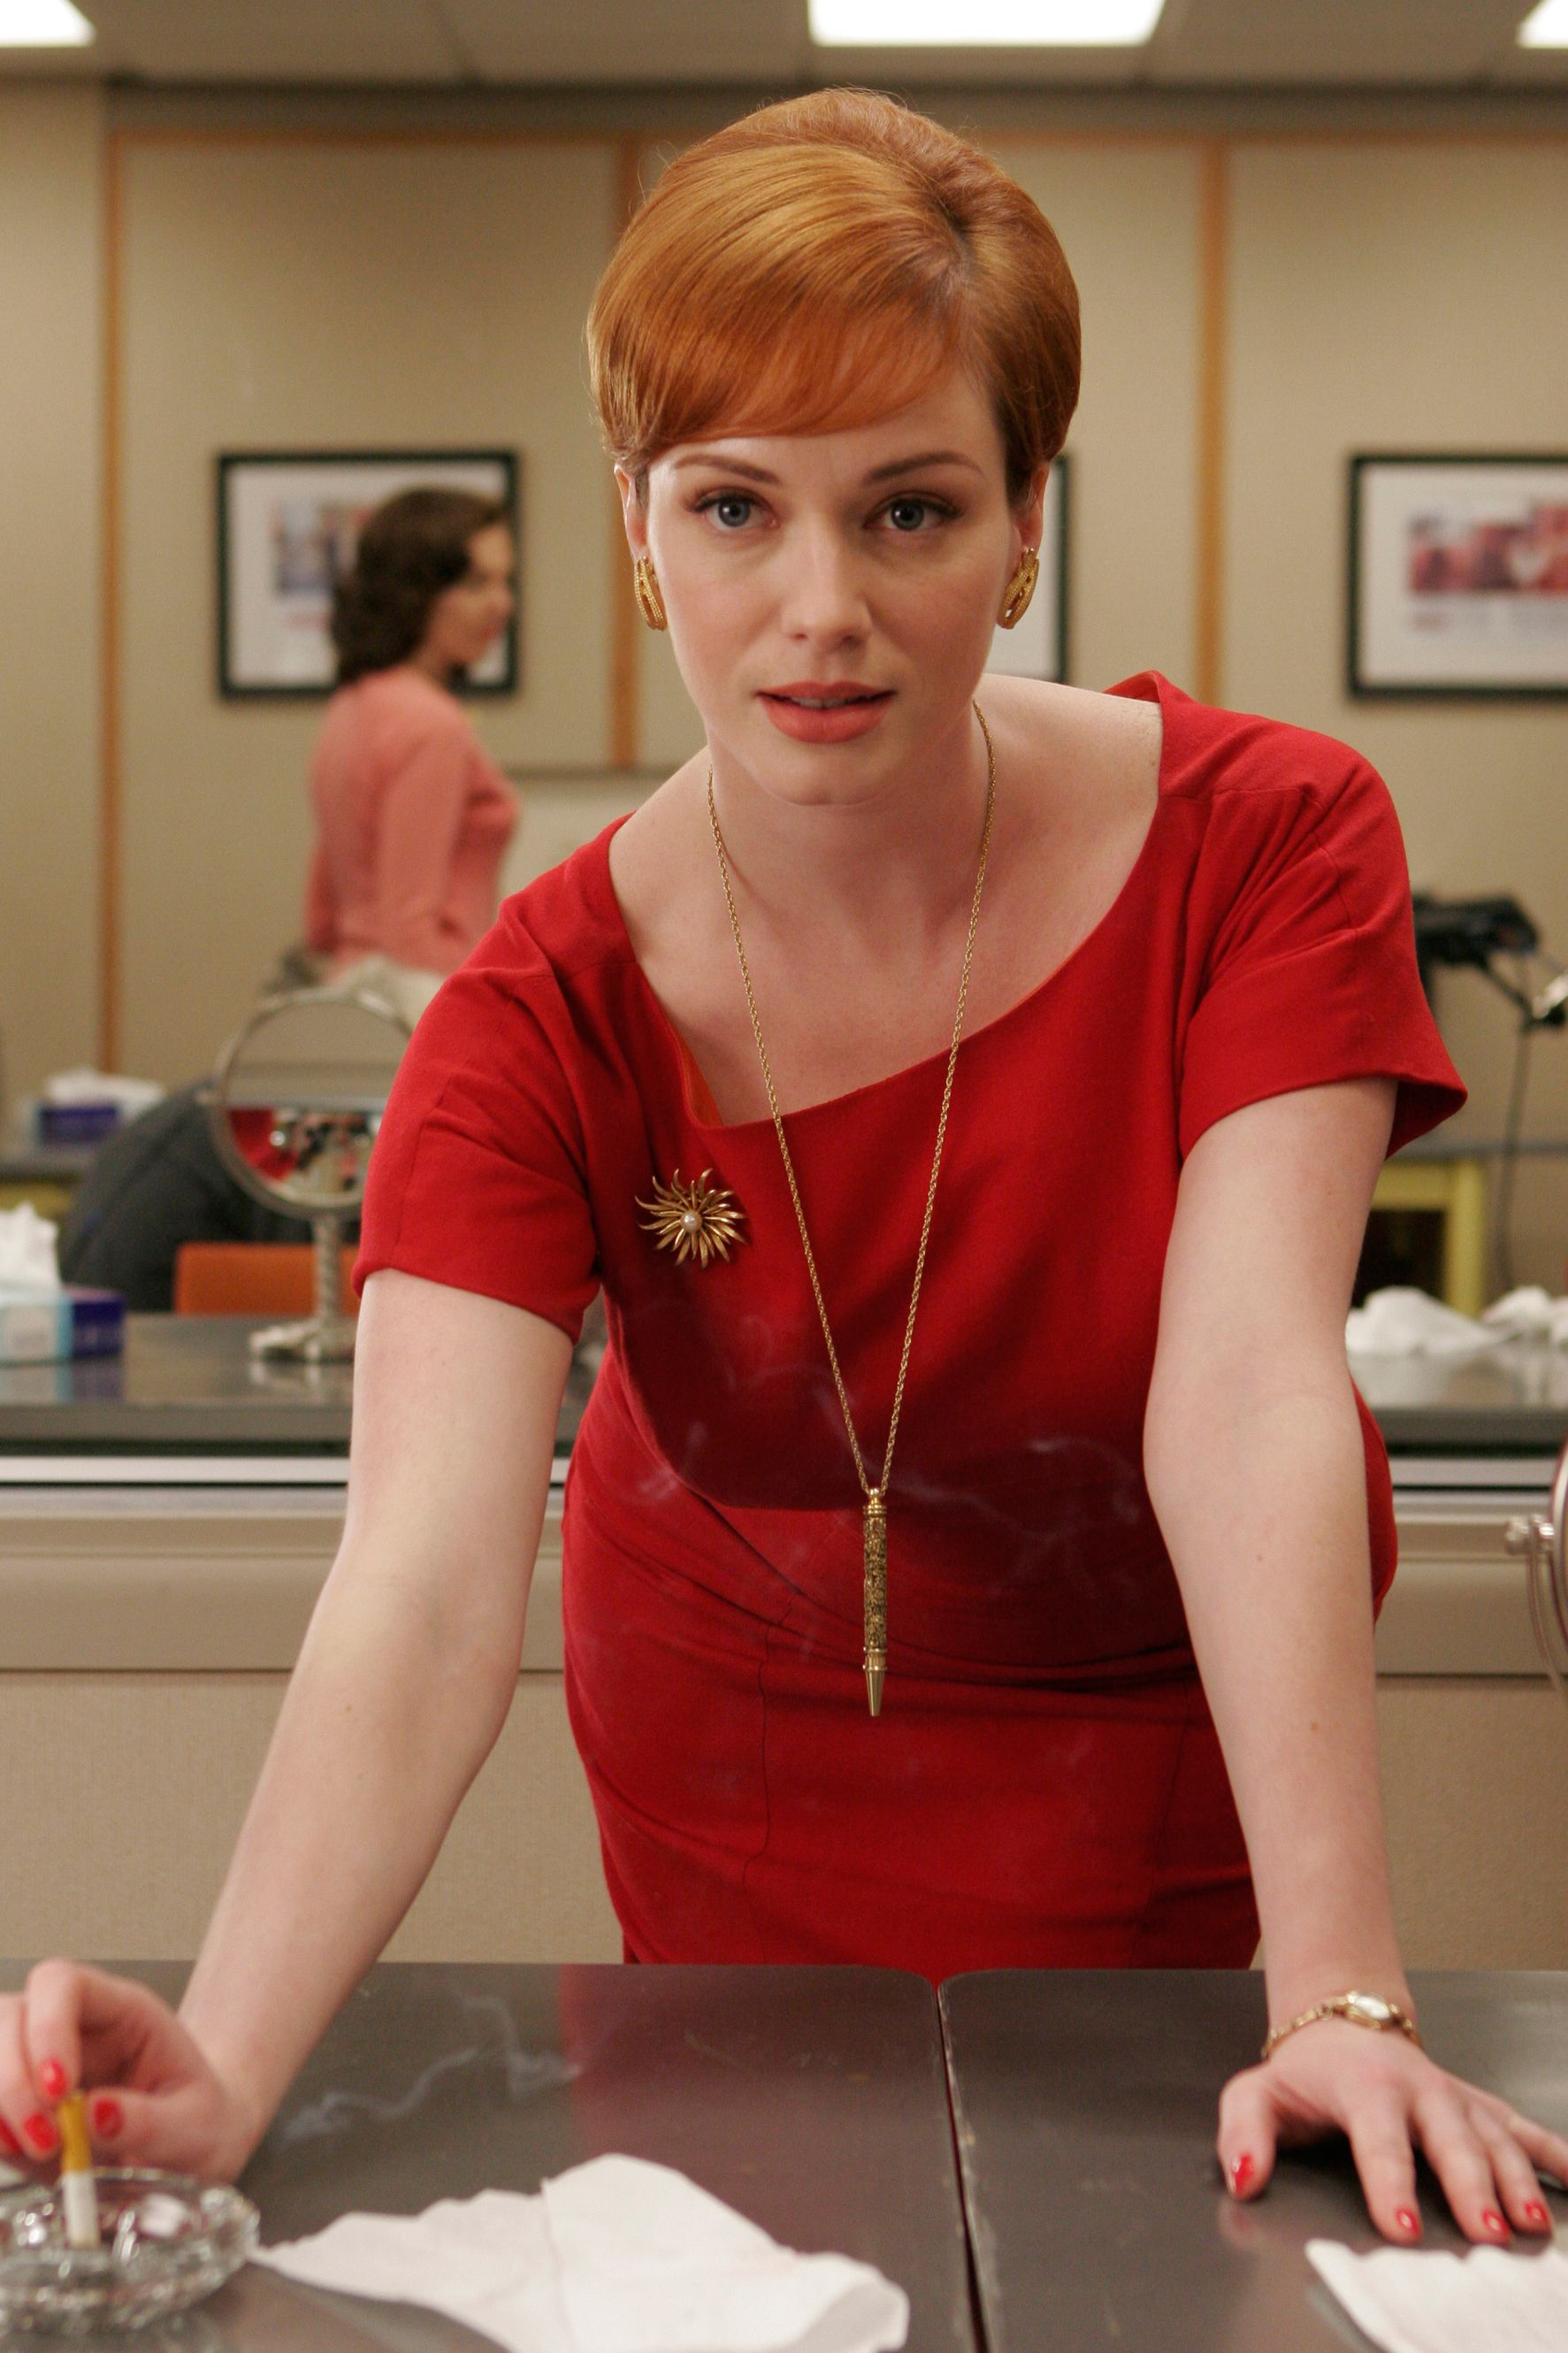 This is the Platonic image of Joan: a snug red sheath topped by her signature pen necklace.